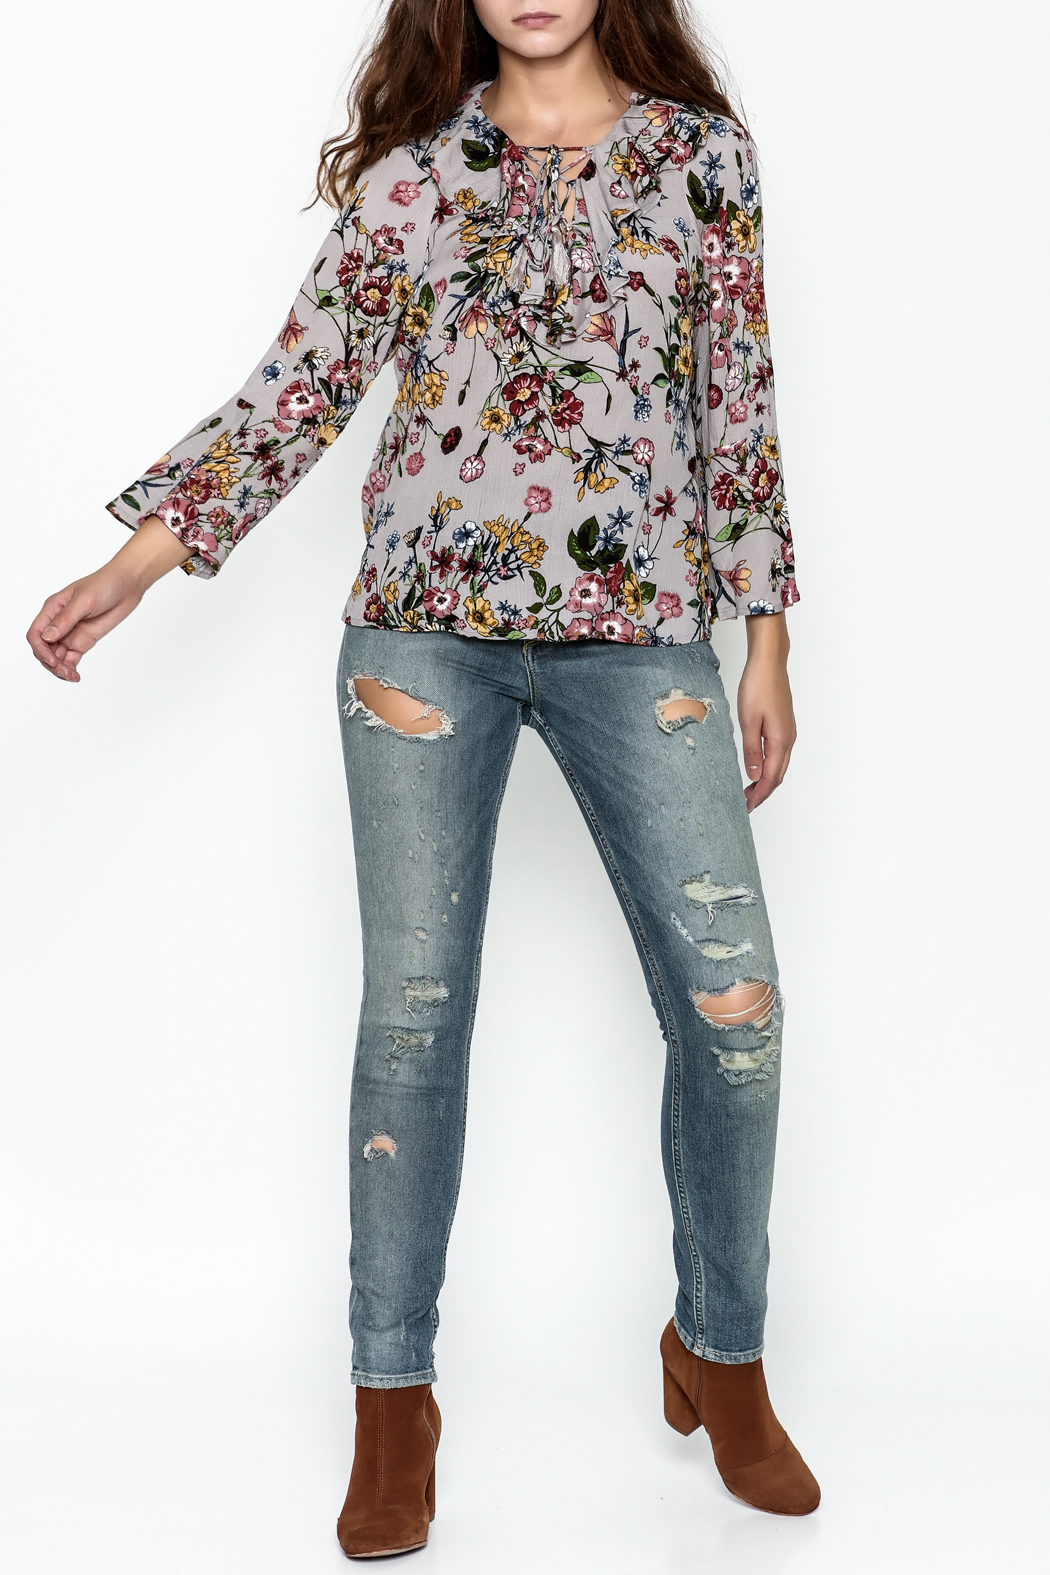 JoyJoy Ruffled Lace Up Top - Side Cropped Image